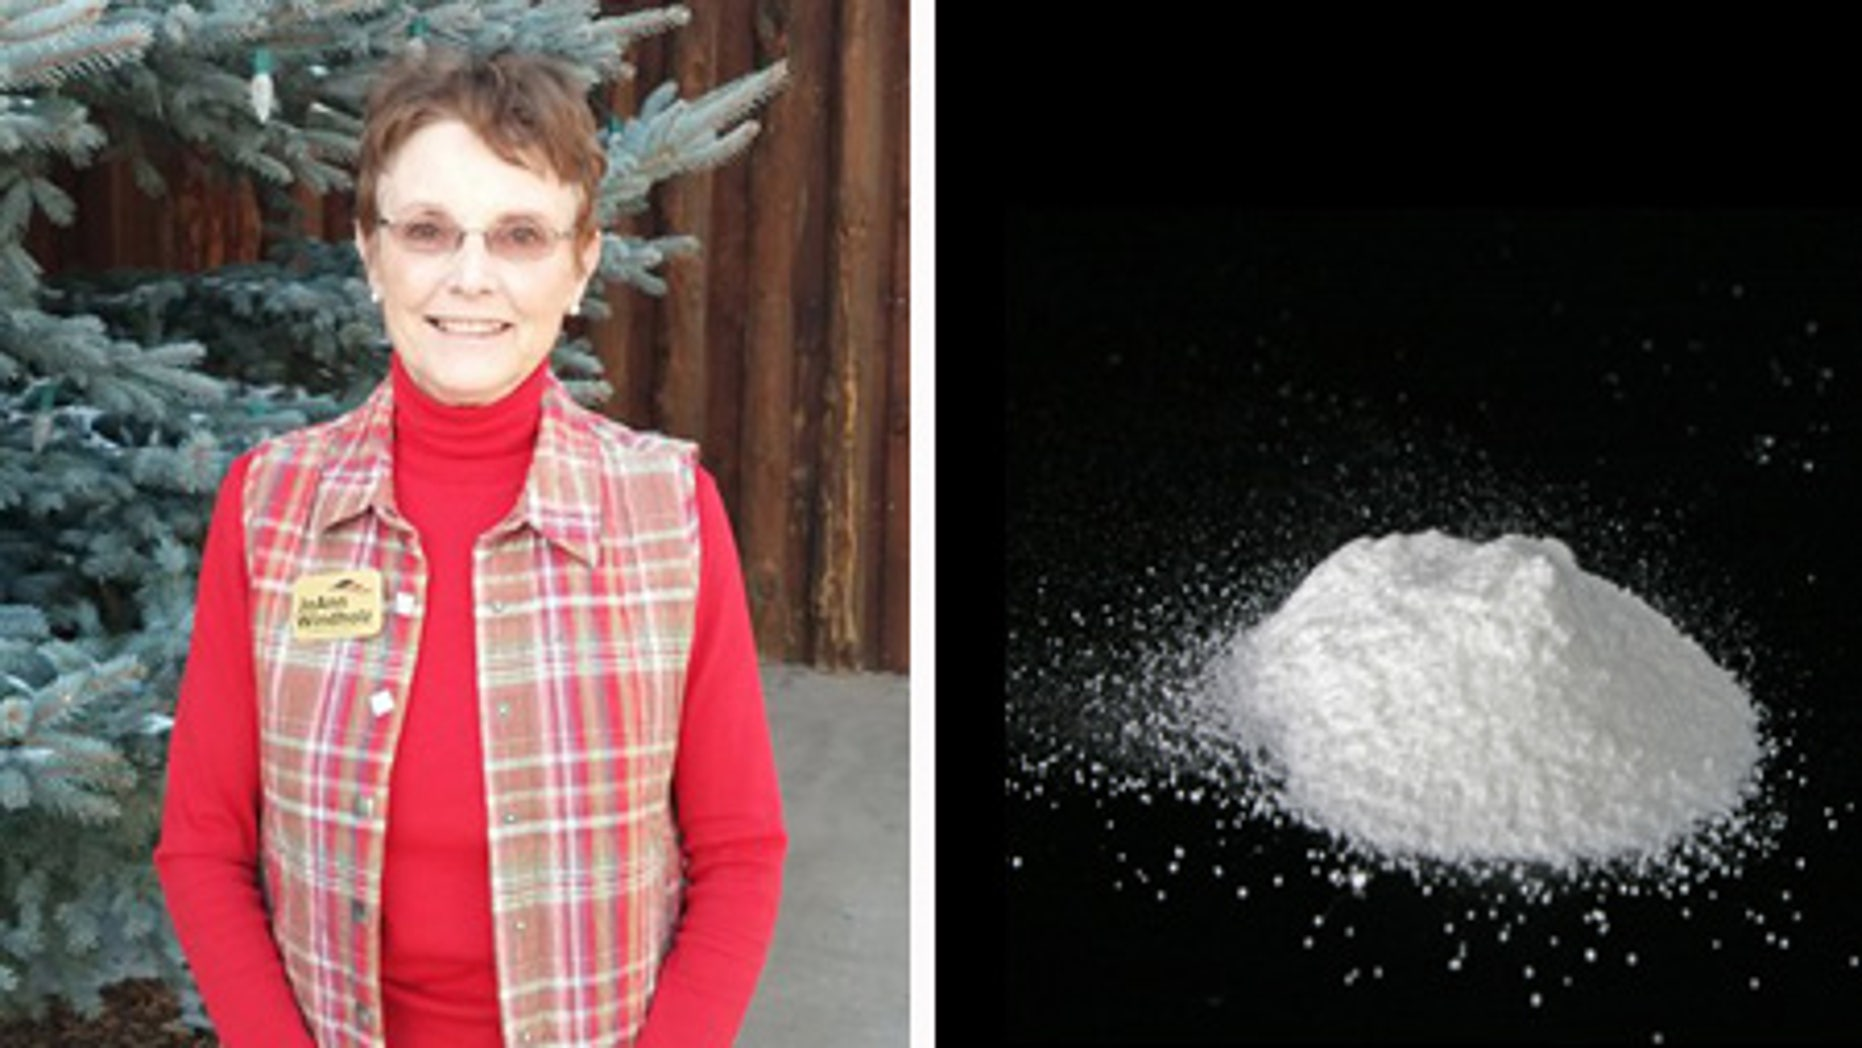 Republican Rep. JoAnn Windholz is pictured in Larkspur, Colo. In the session that begins in Jan. 2015, Rep. Windholz is introducing a bill to ban the product Palcohol, which is alcohol in powdered form, before the product goes on sale out of concern it will increase underage drinking.